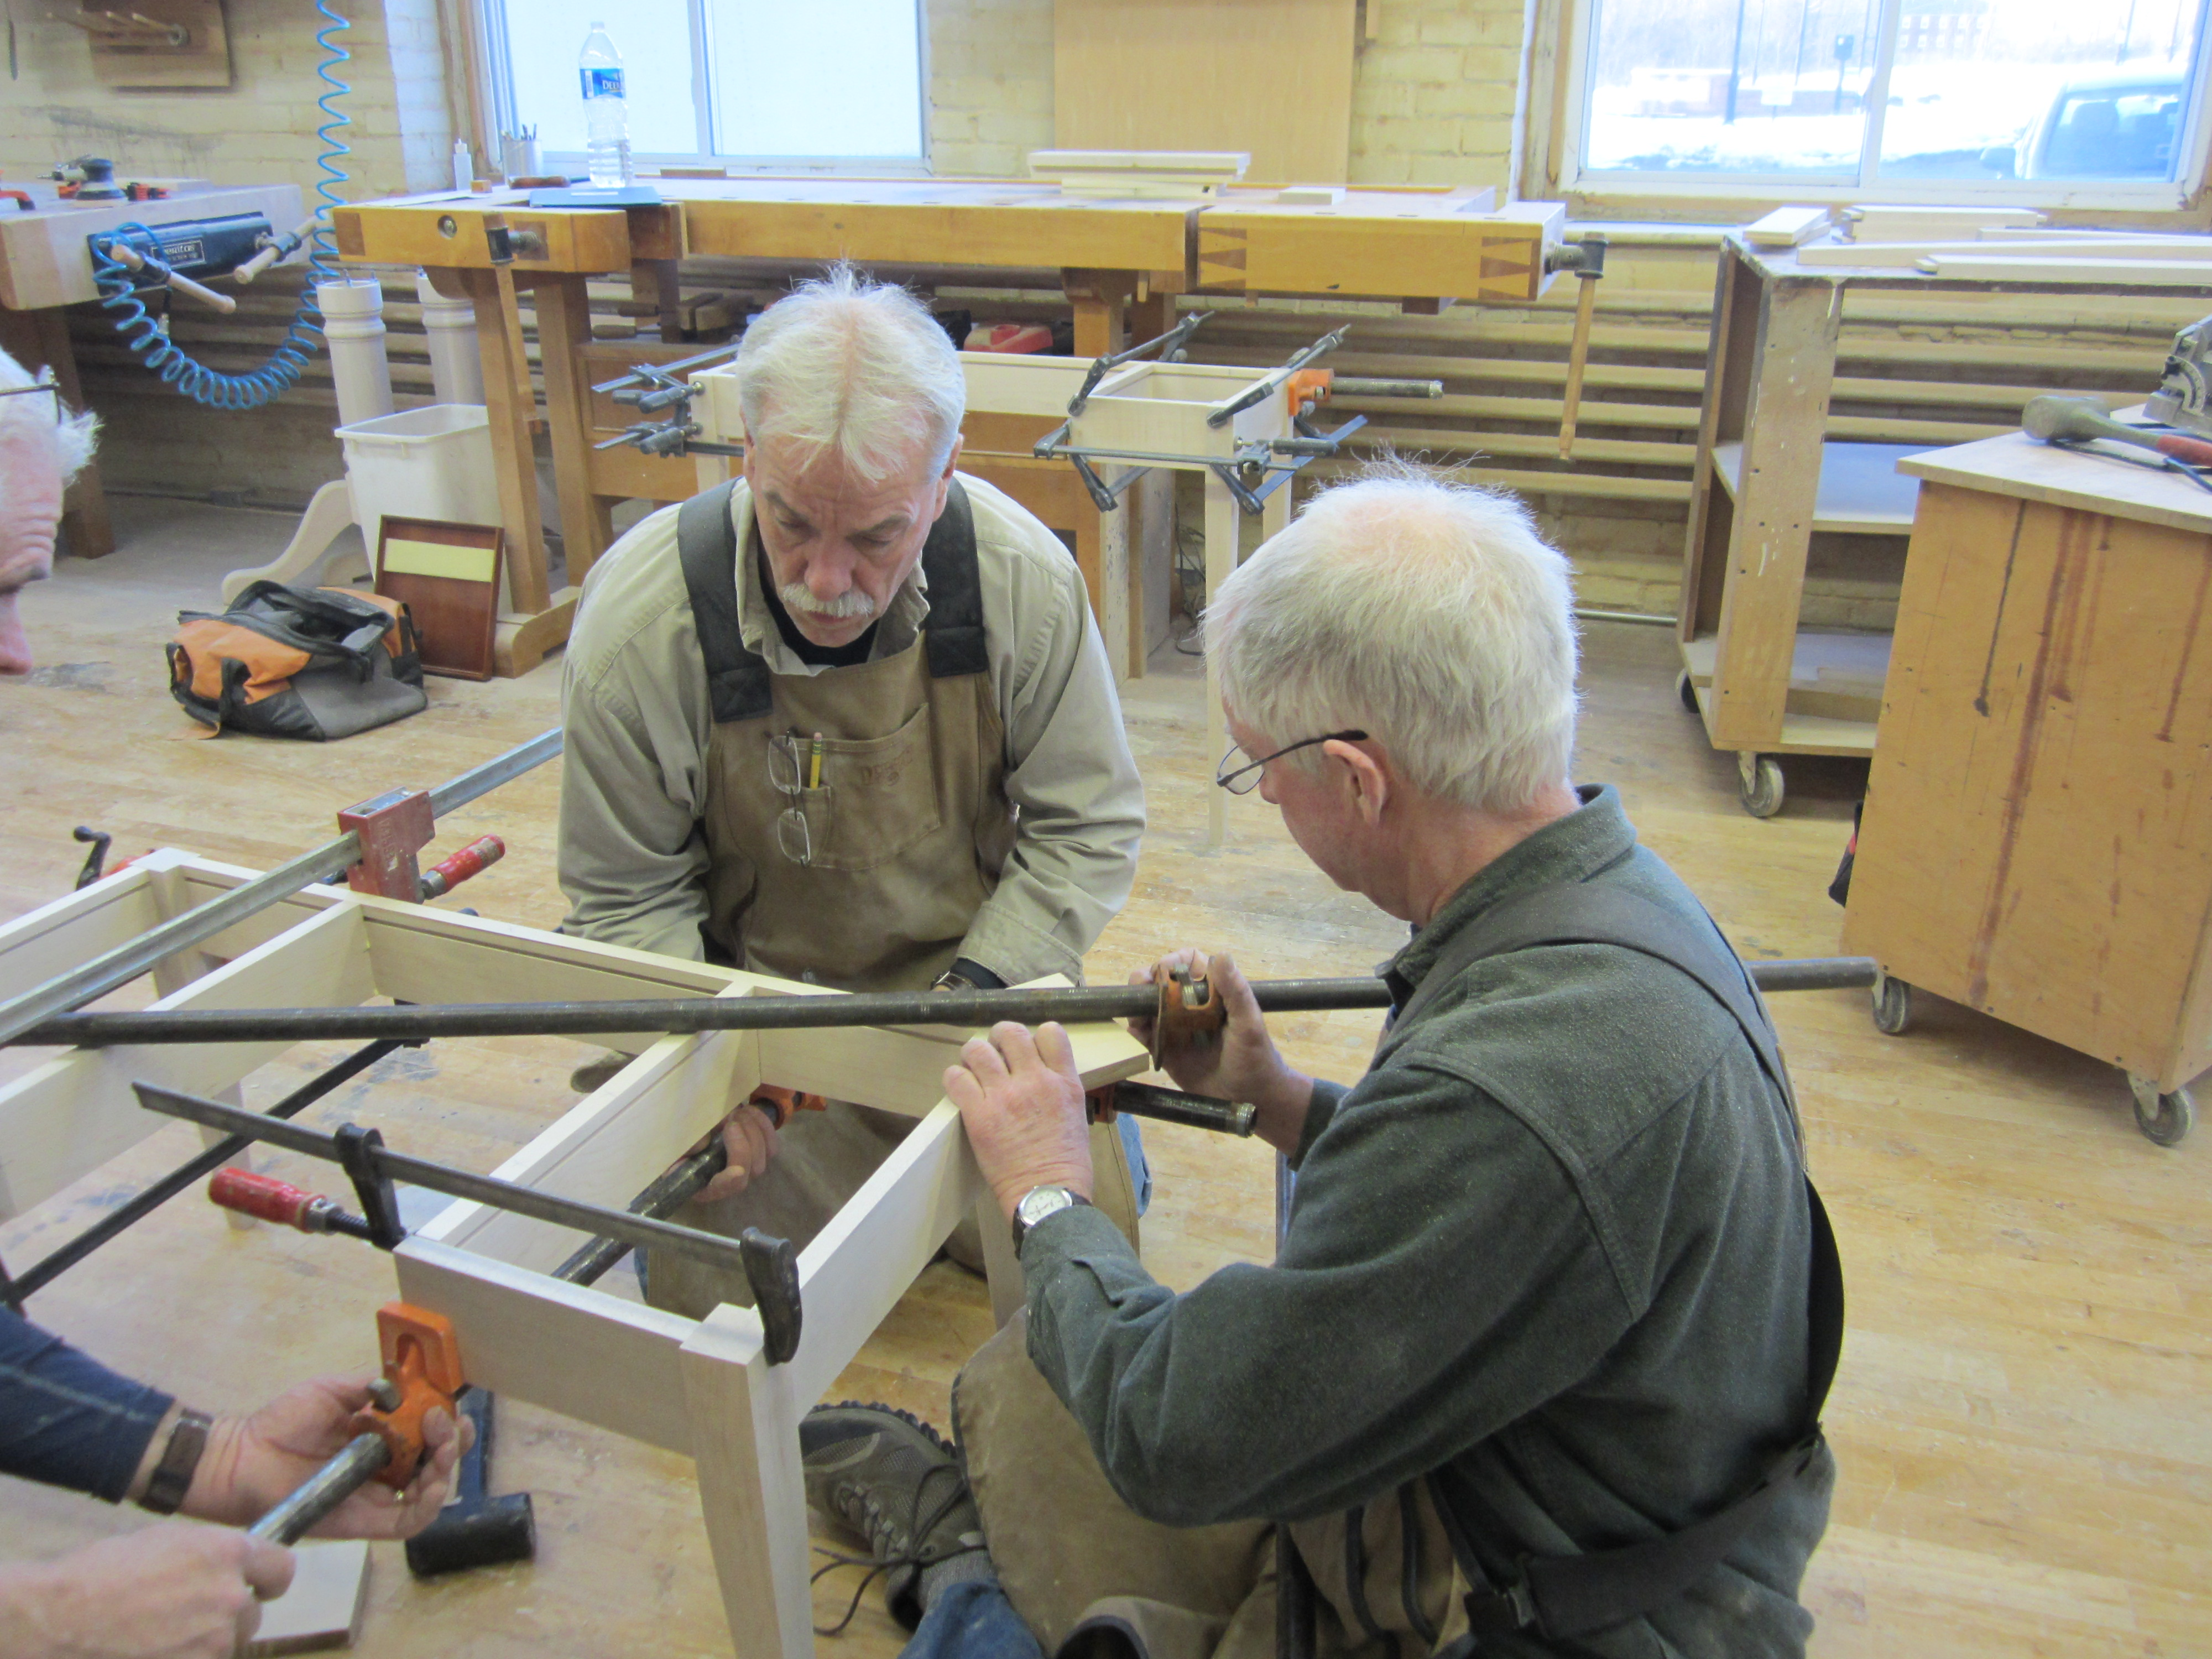 woodworking 2 class 2-22-2014 003